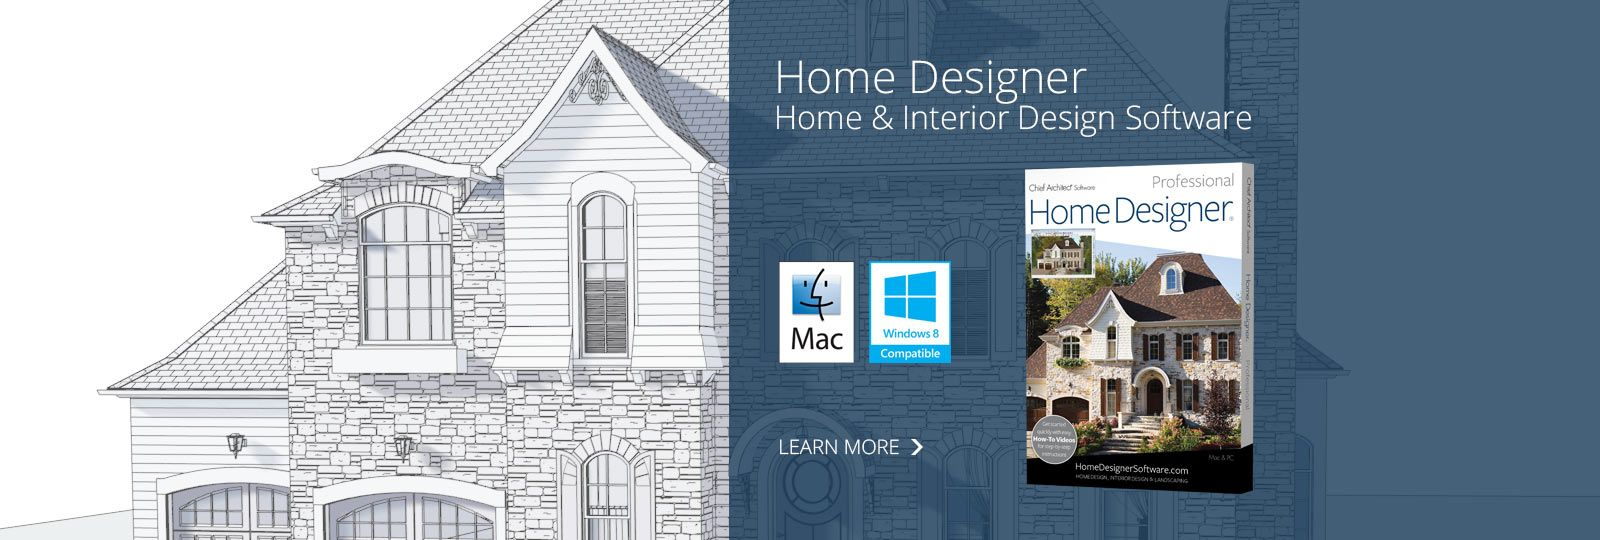 Home Design Software Chief Architect Interior Design Software Best Interior Design Websites Home Design Software